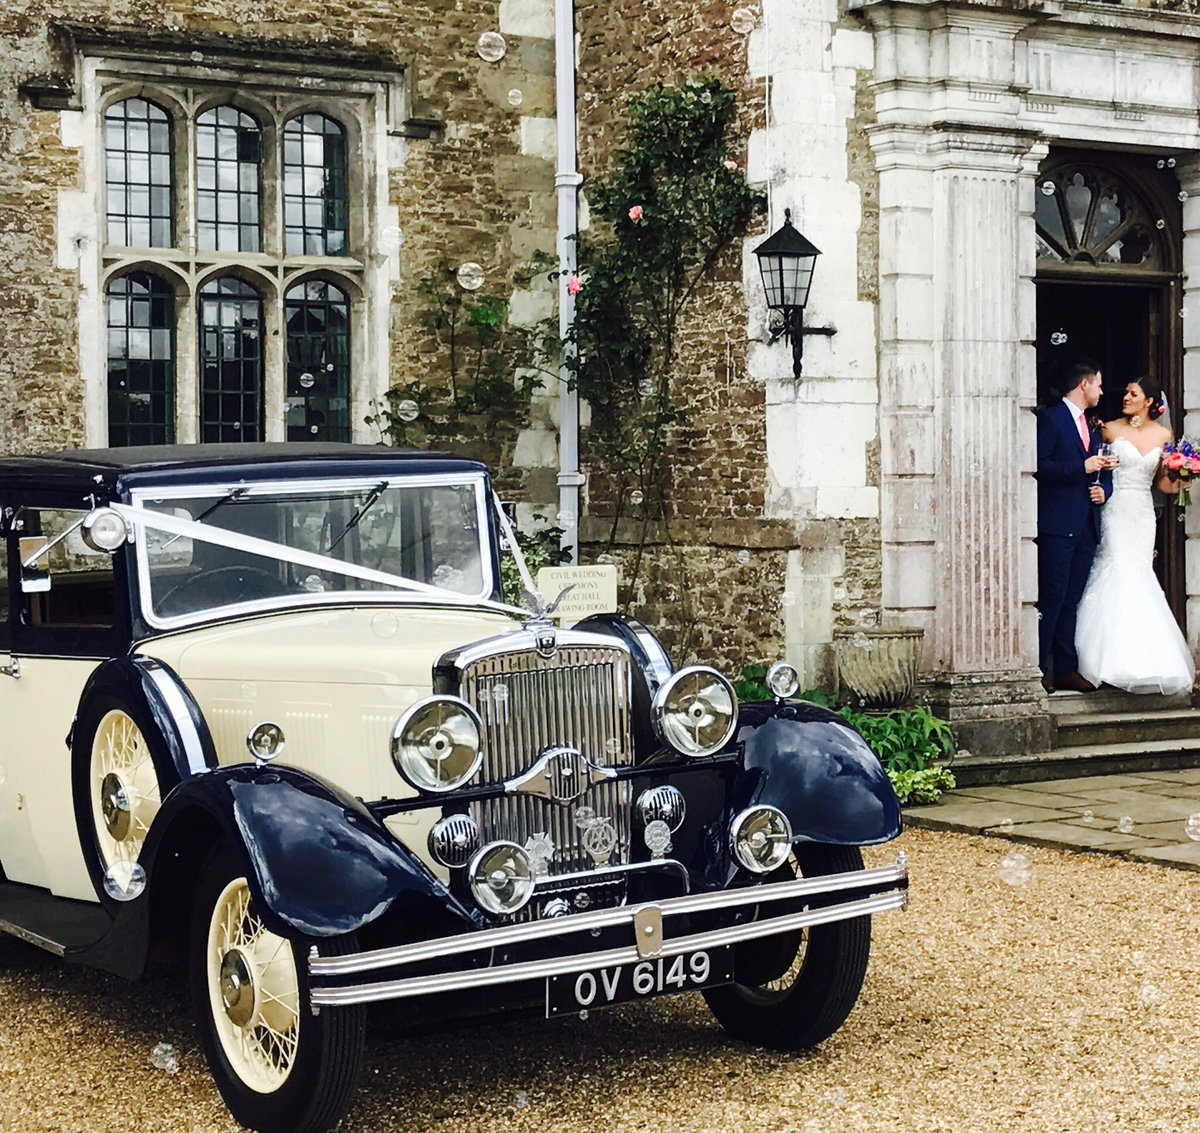 RT @classicvintage1 Fabulous day to get married! And joined by two beautiful stallions #sundaywedding #classicandvintage